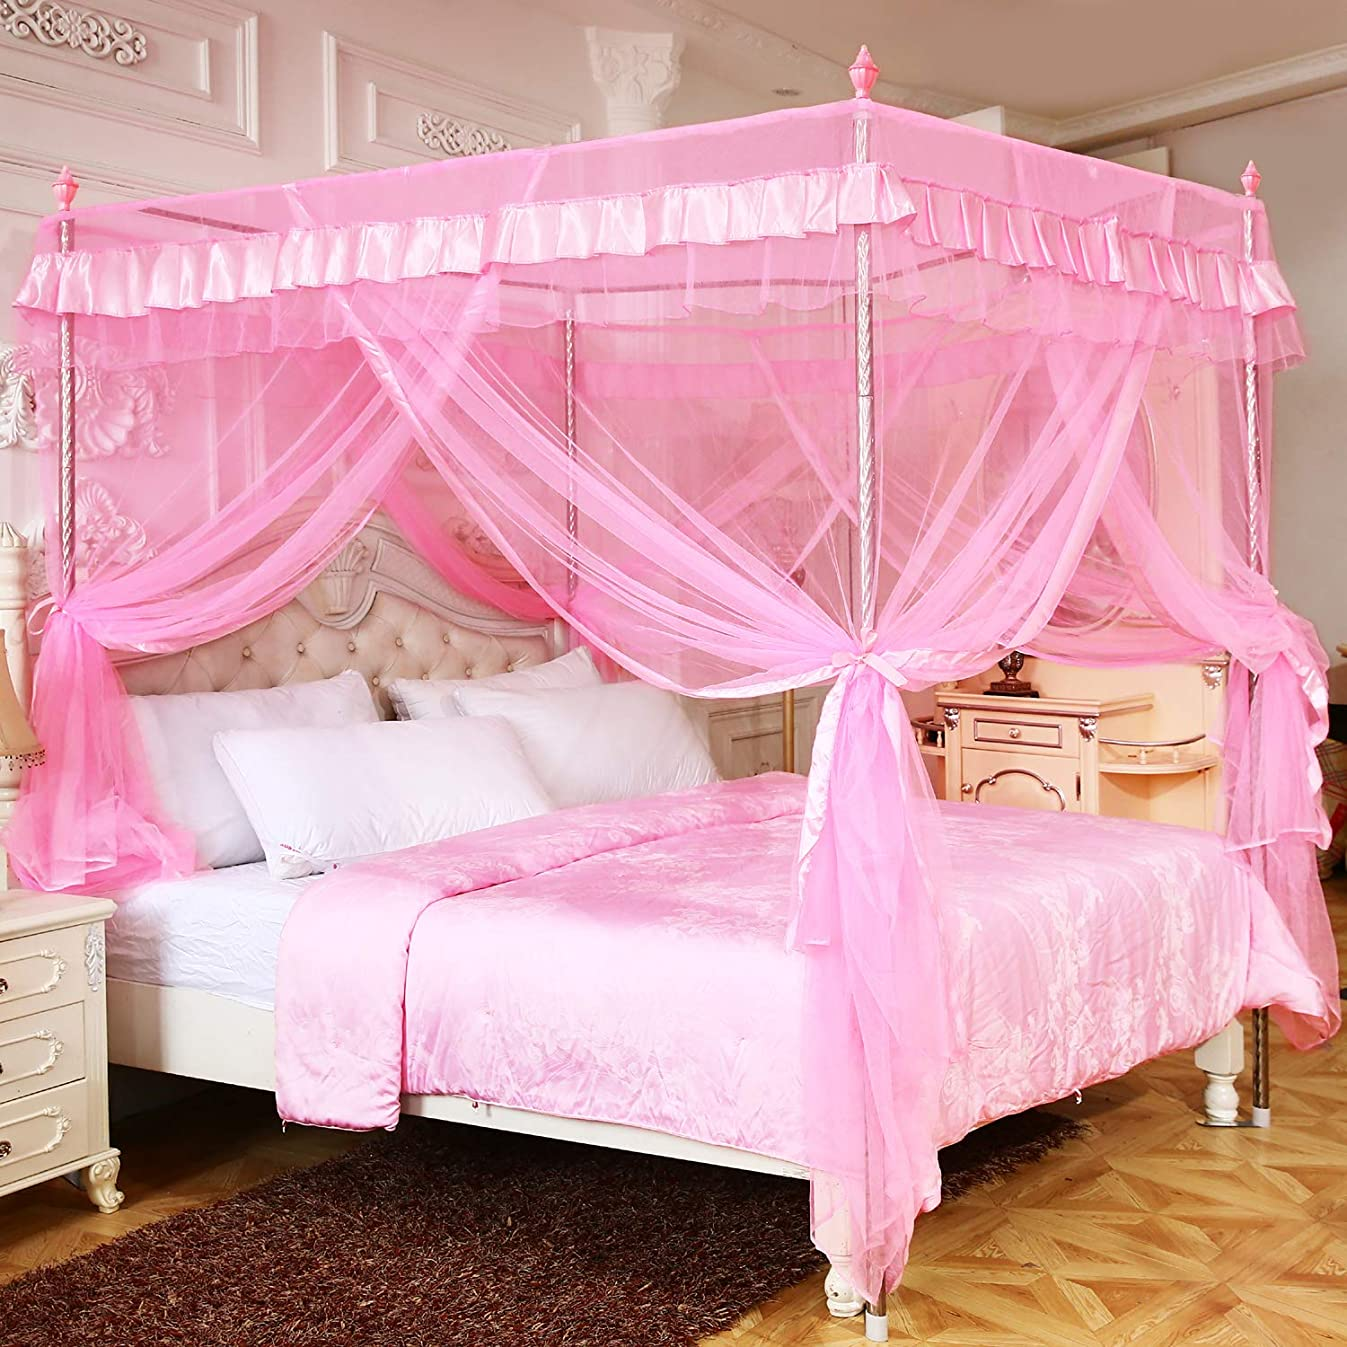 Pink Princess 4 Corners Post Canopy Bed Curtains For Girls Kids Toddlers Crib Bed Canopy Netting, Bedroom Decor,Gift (Twin)